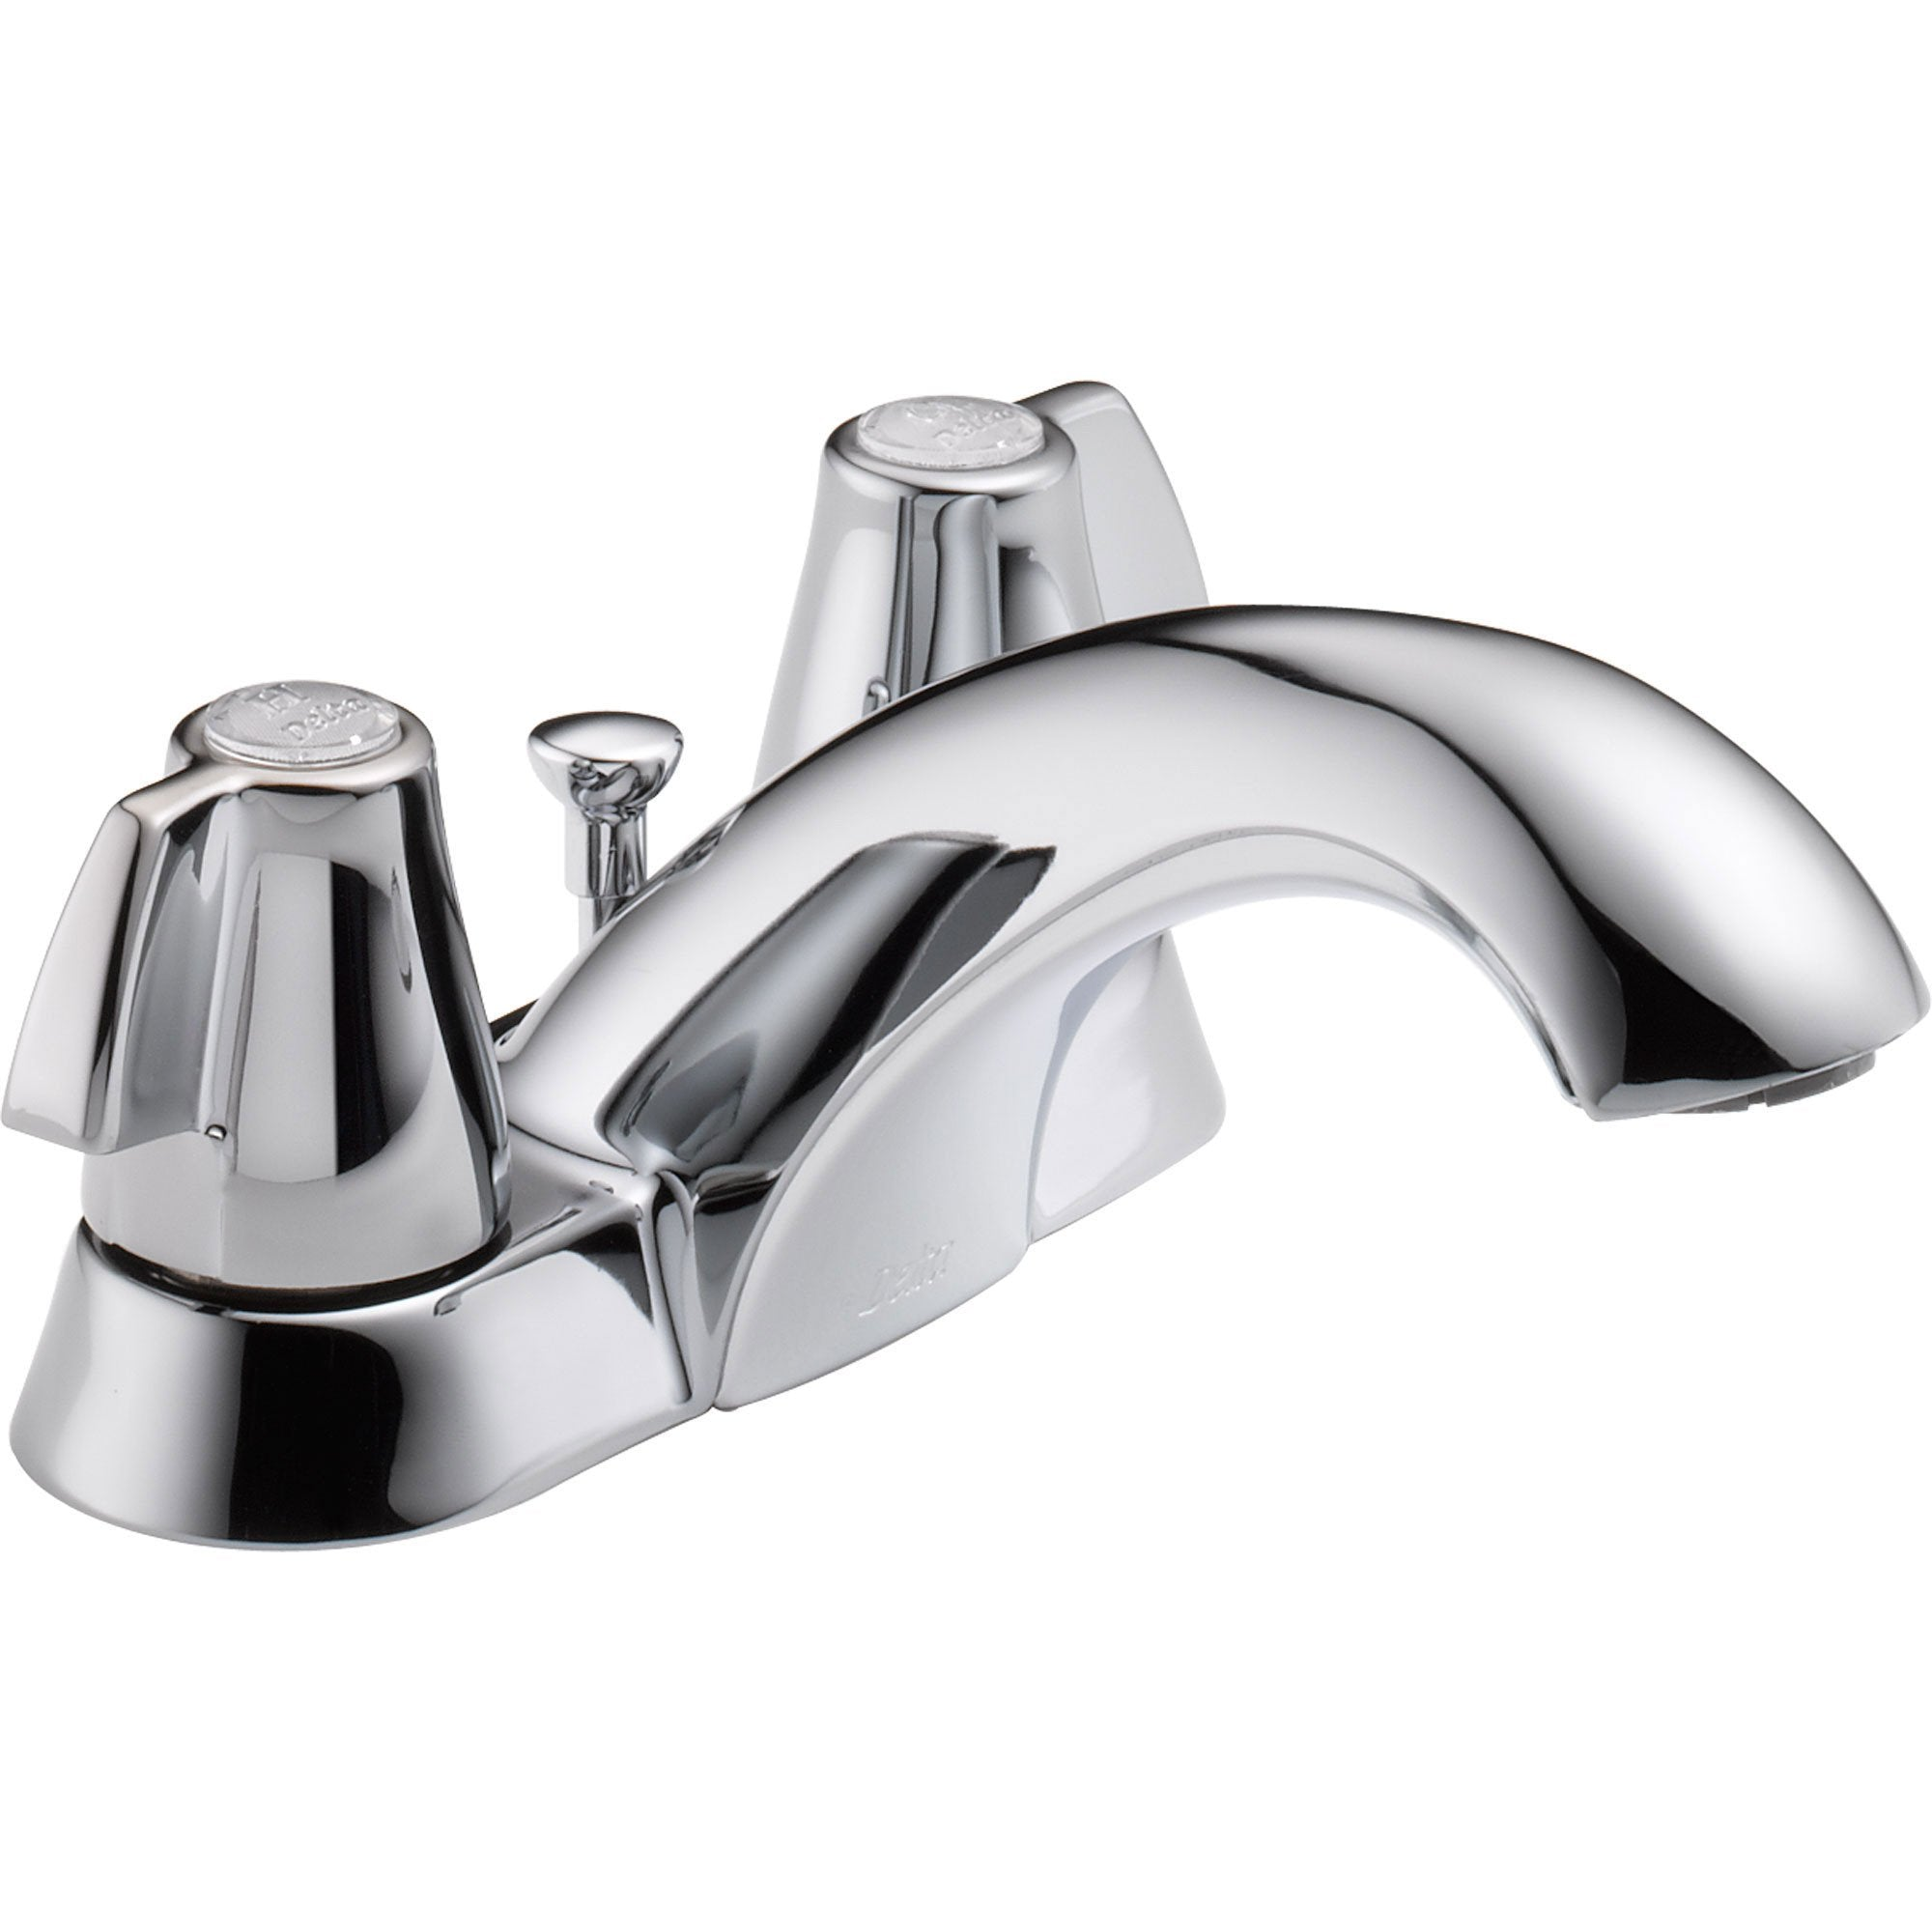 "Delta Classic 4"" Centerset Chrome 2-Handle Mid Arc Bathroom Sink Faucet 474255"